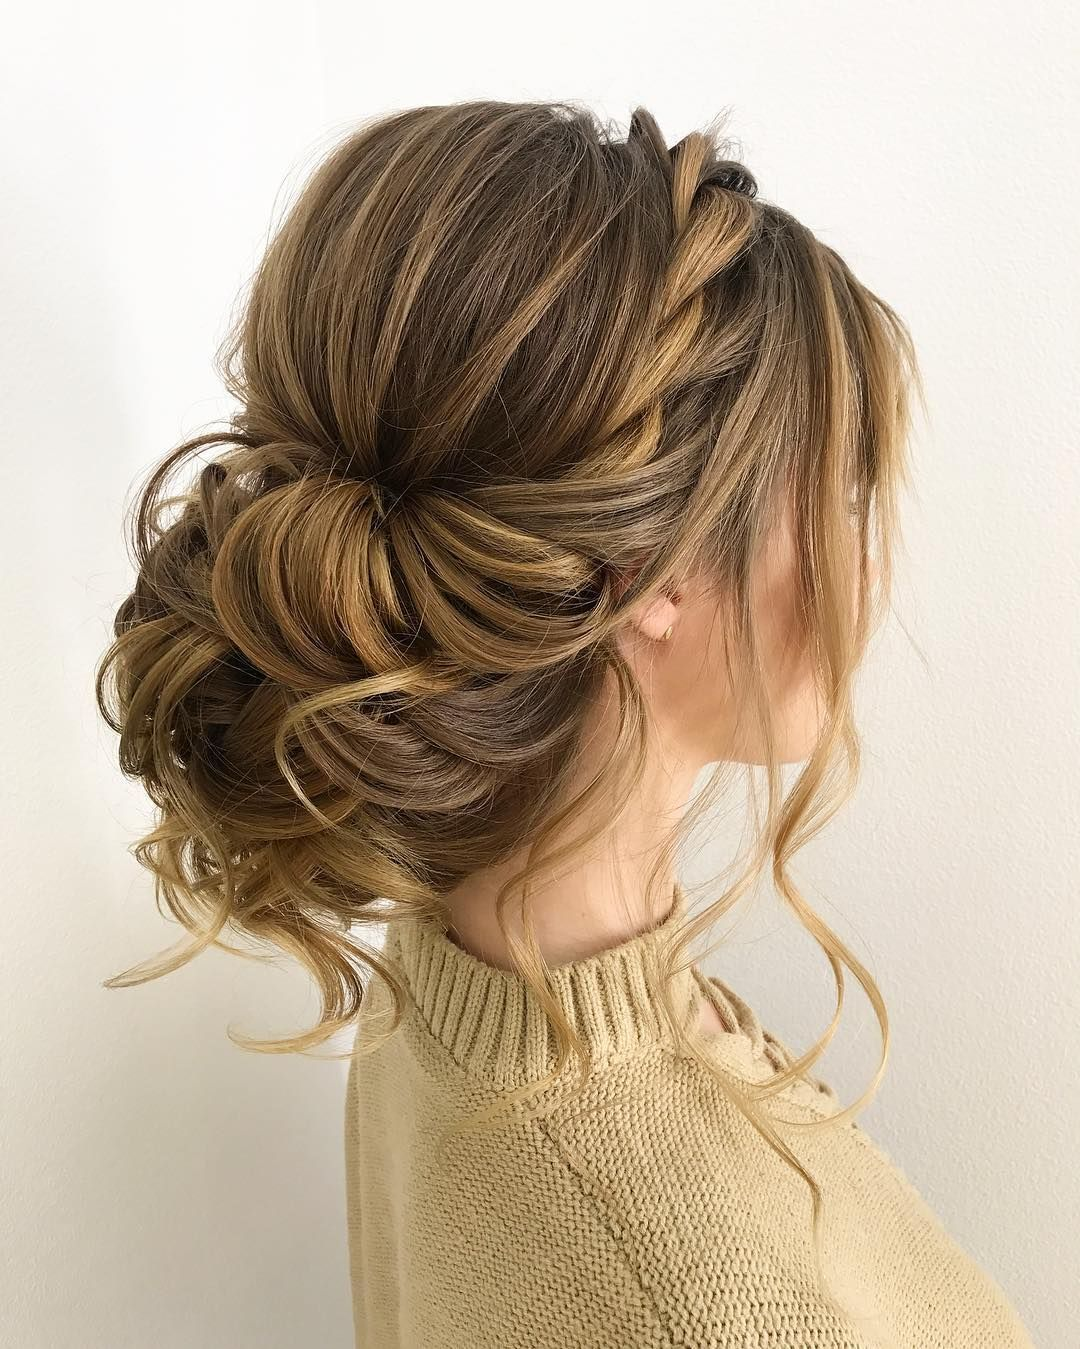 Wedding Styles: Gorgeous Wedding Updo Hairstyles That Will Wow Your Big